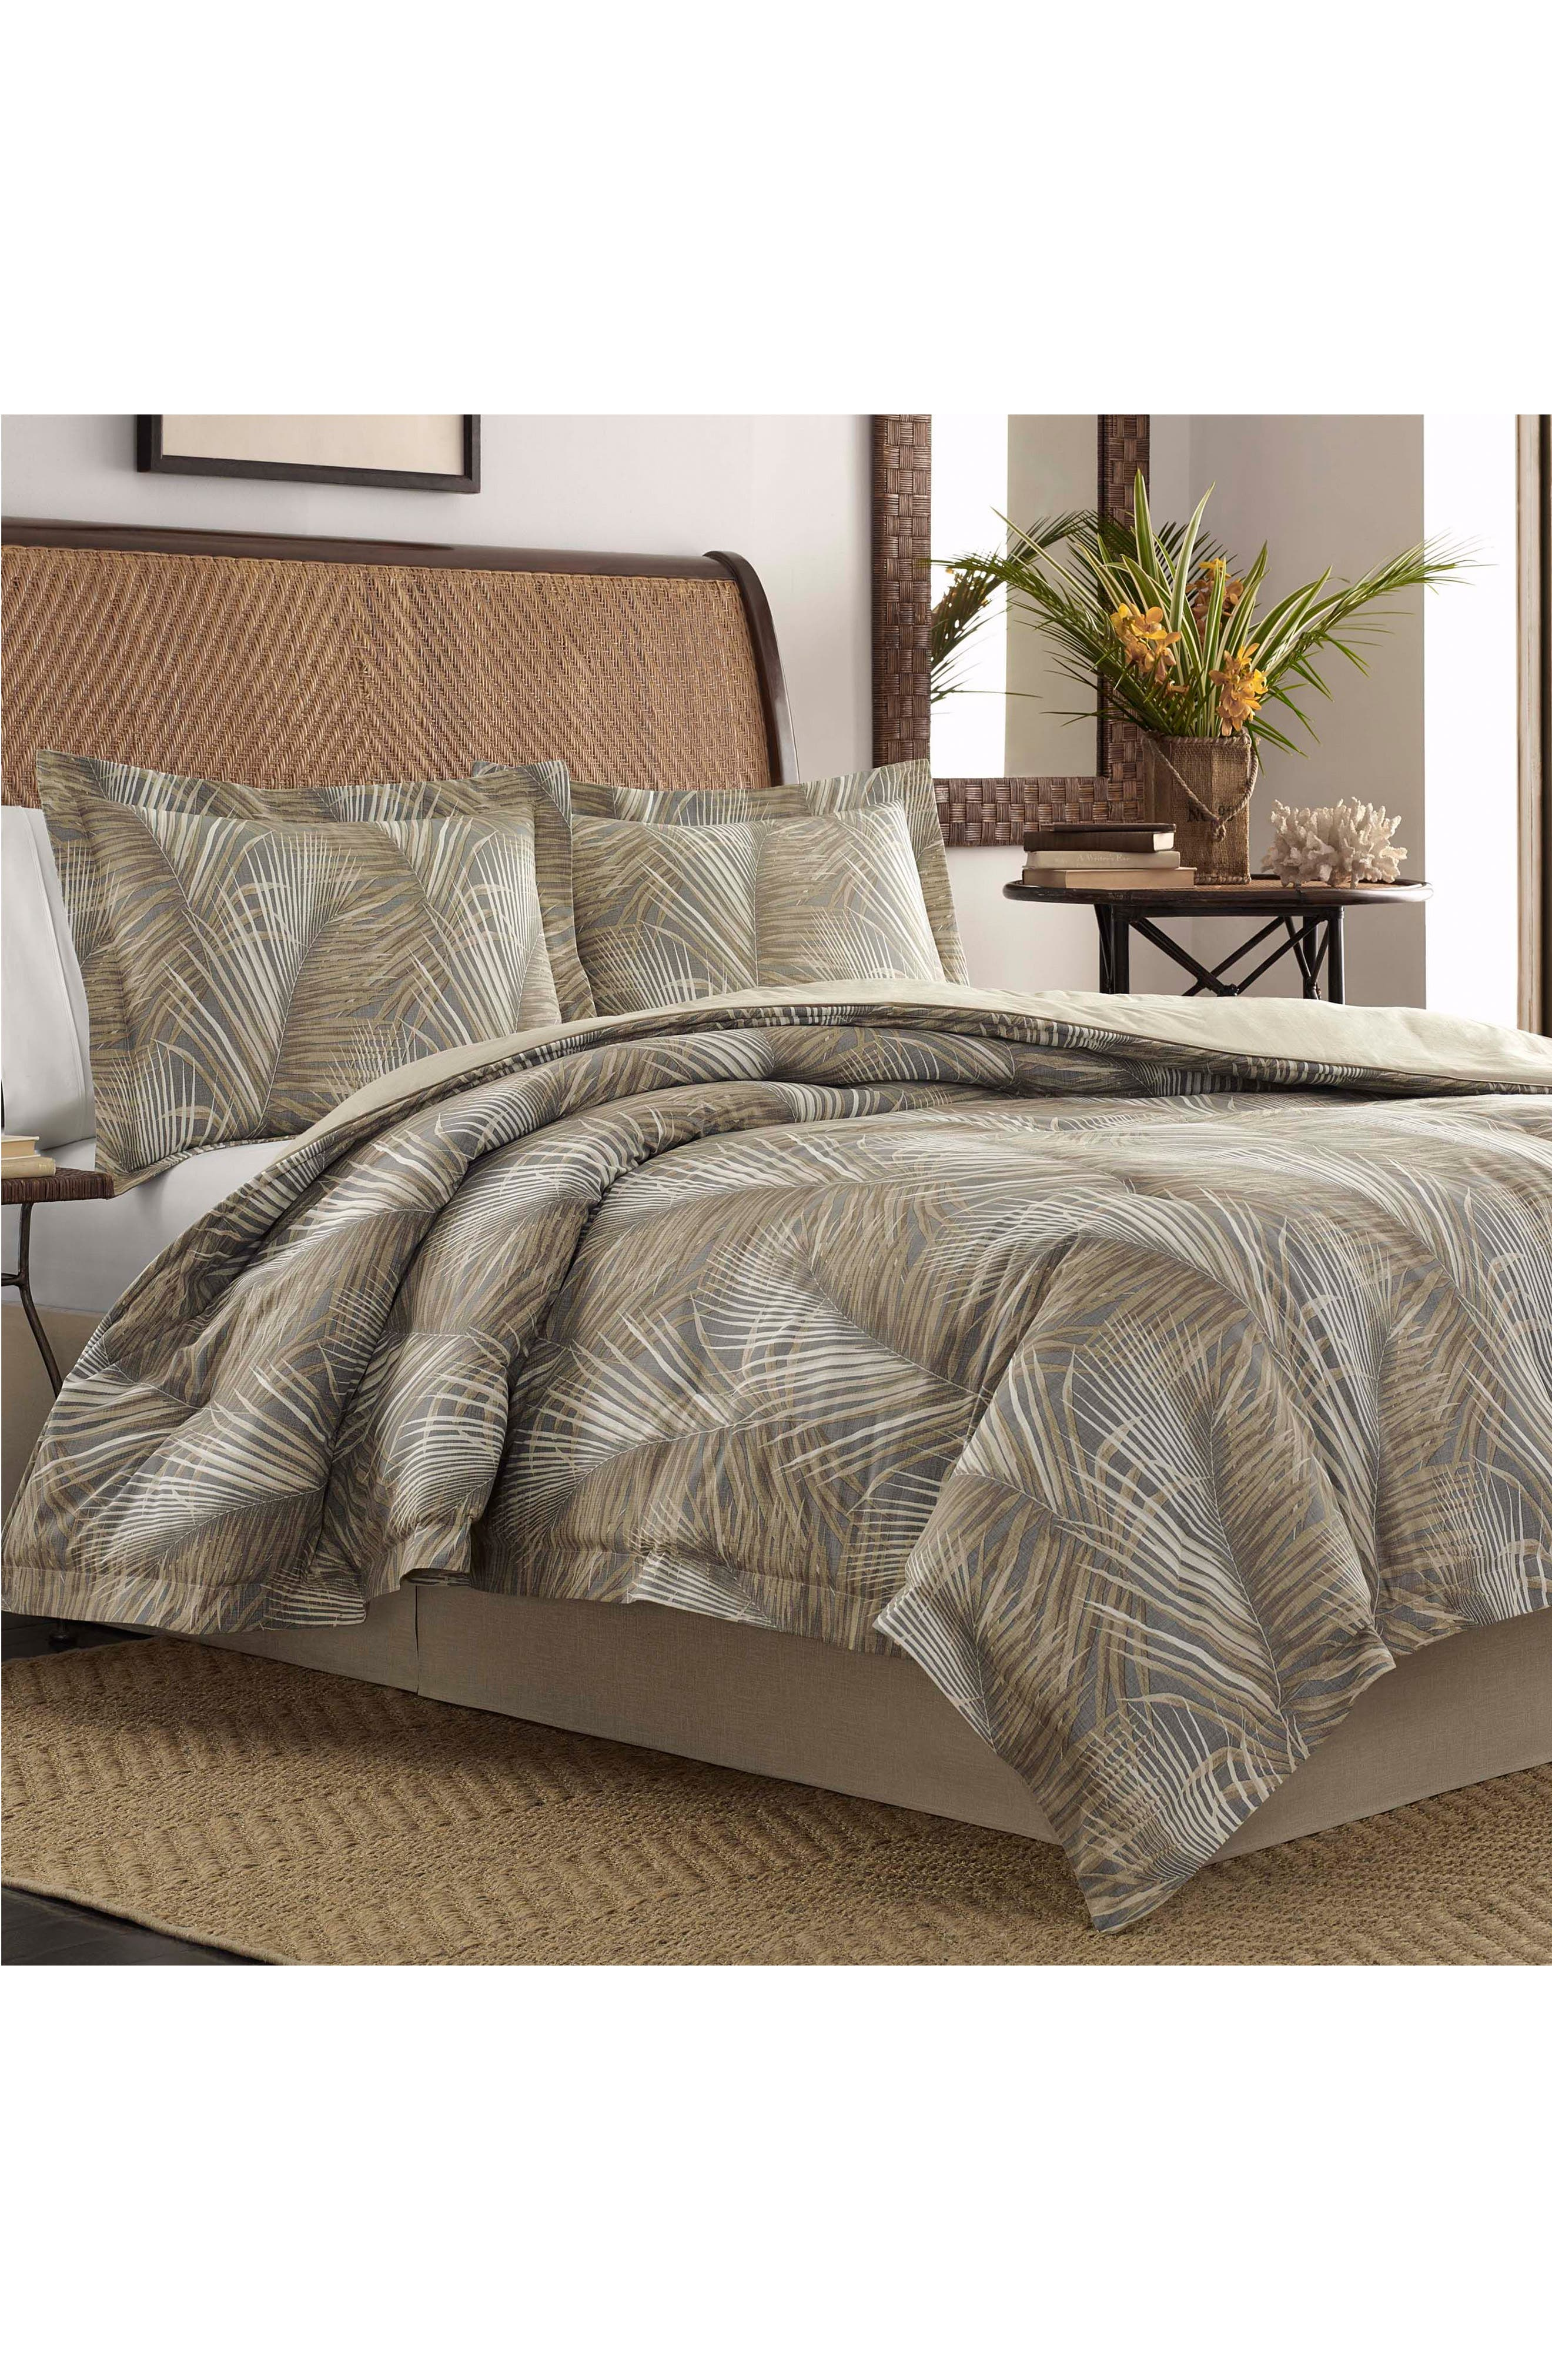 king comforter yellow covers california inserts leopard duvet cover fitting topdown and bedding white sizes canopy pages crane comforters